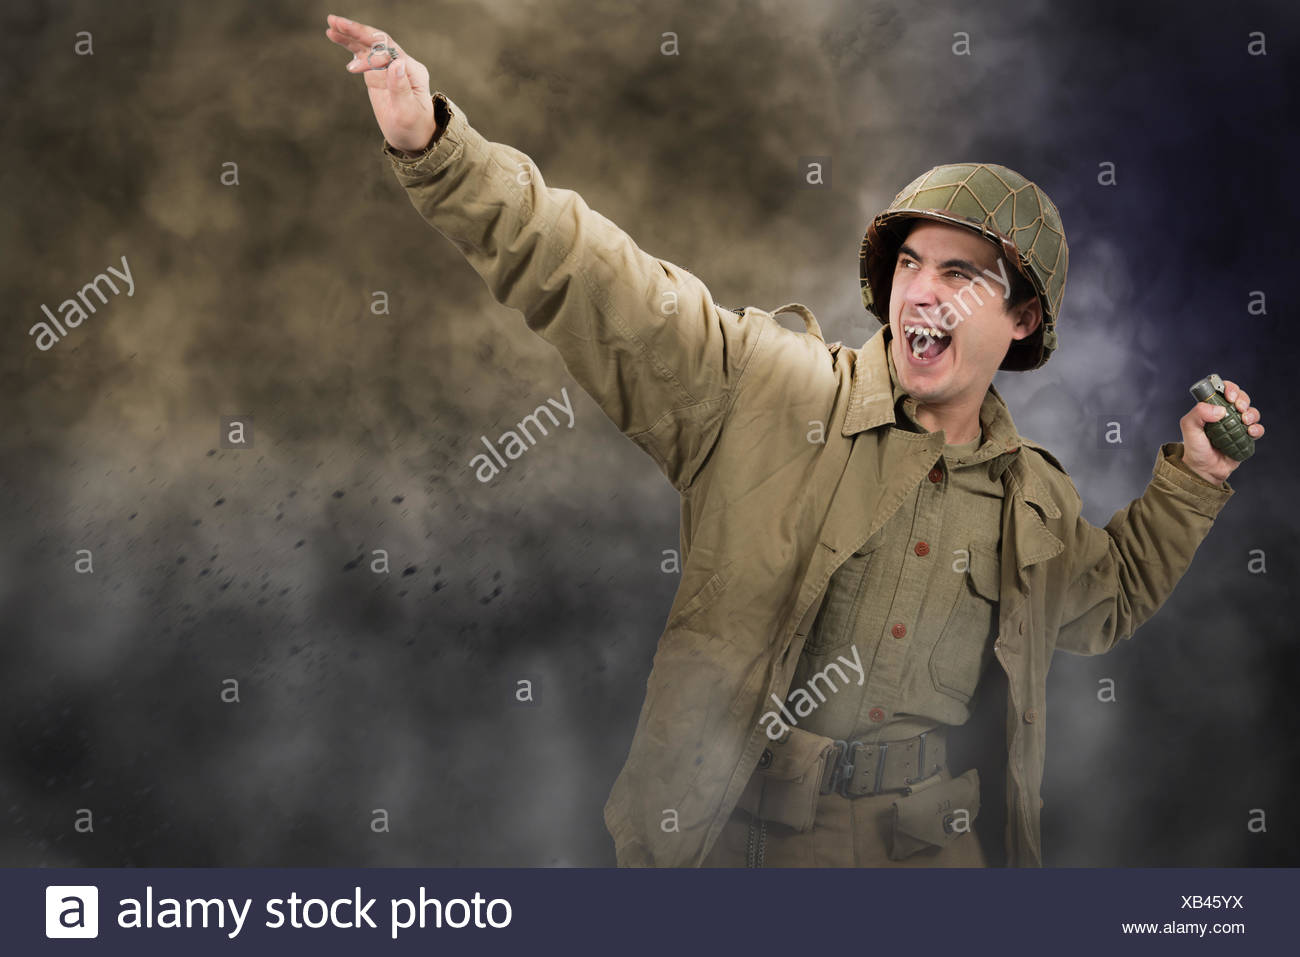 American soldier ww2 throwing a grenade - Stock Image